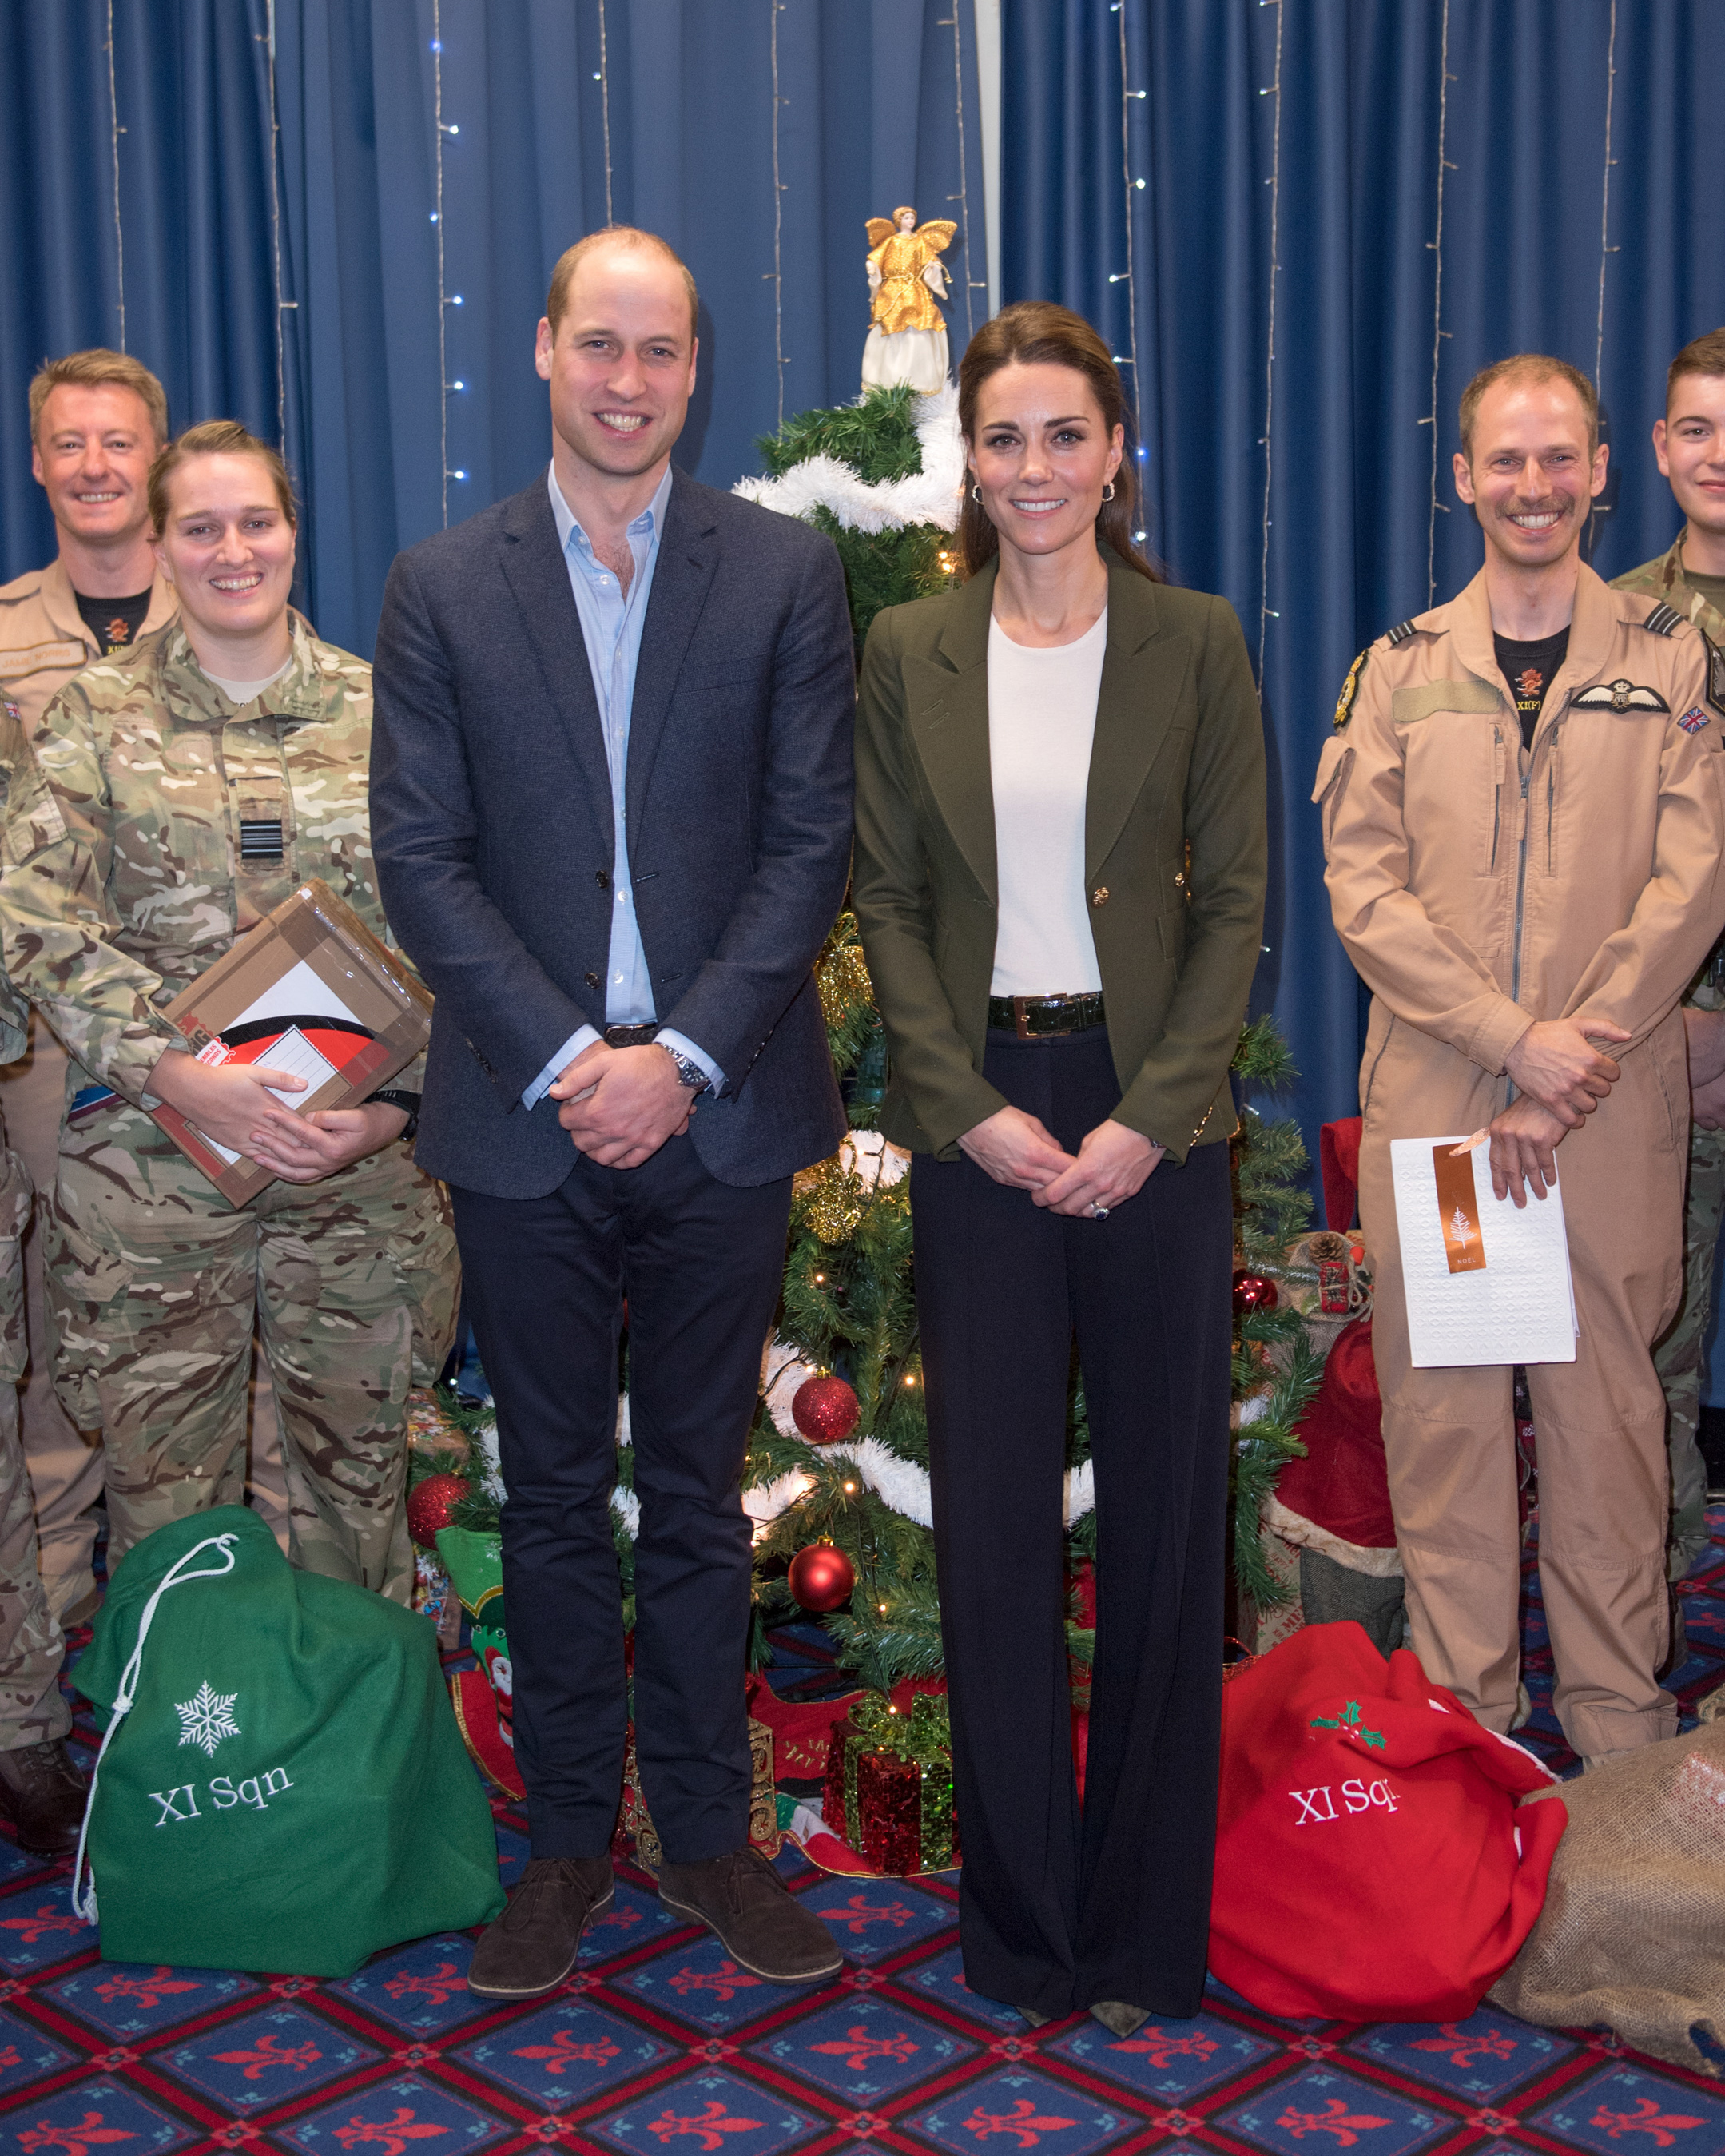 Kate Middleton and Prince William at the Oasis Centre with RAF soldiers in Cyprus